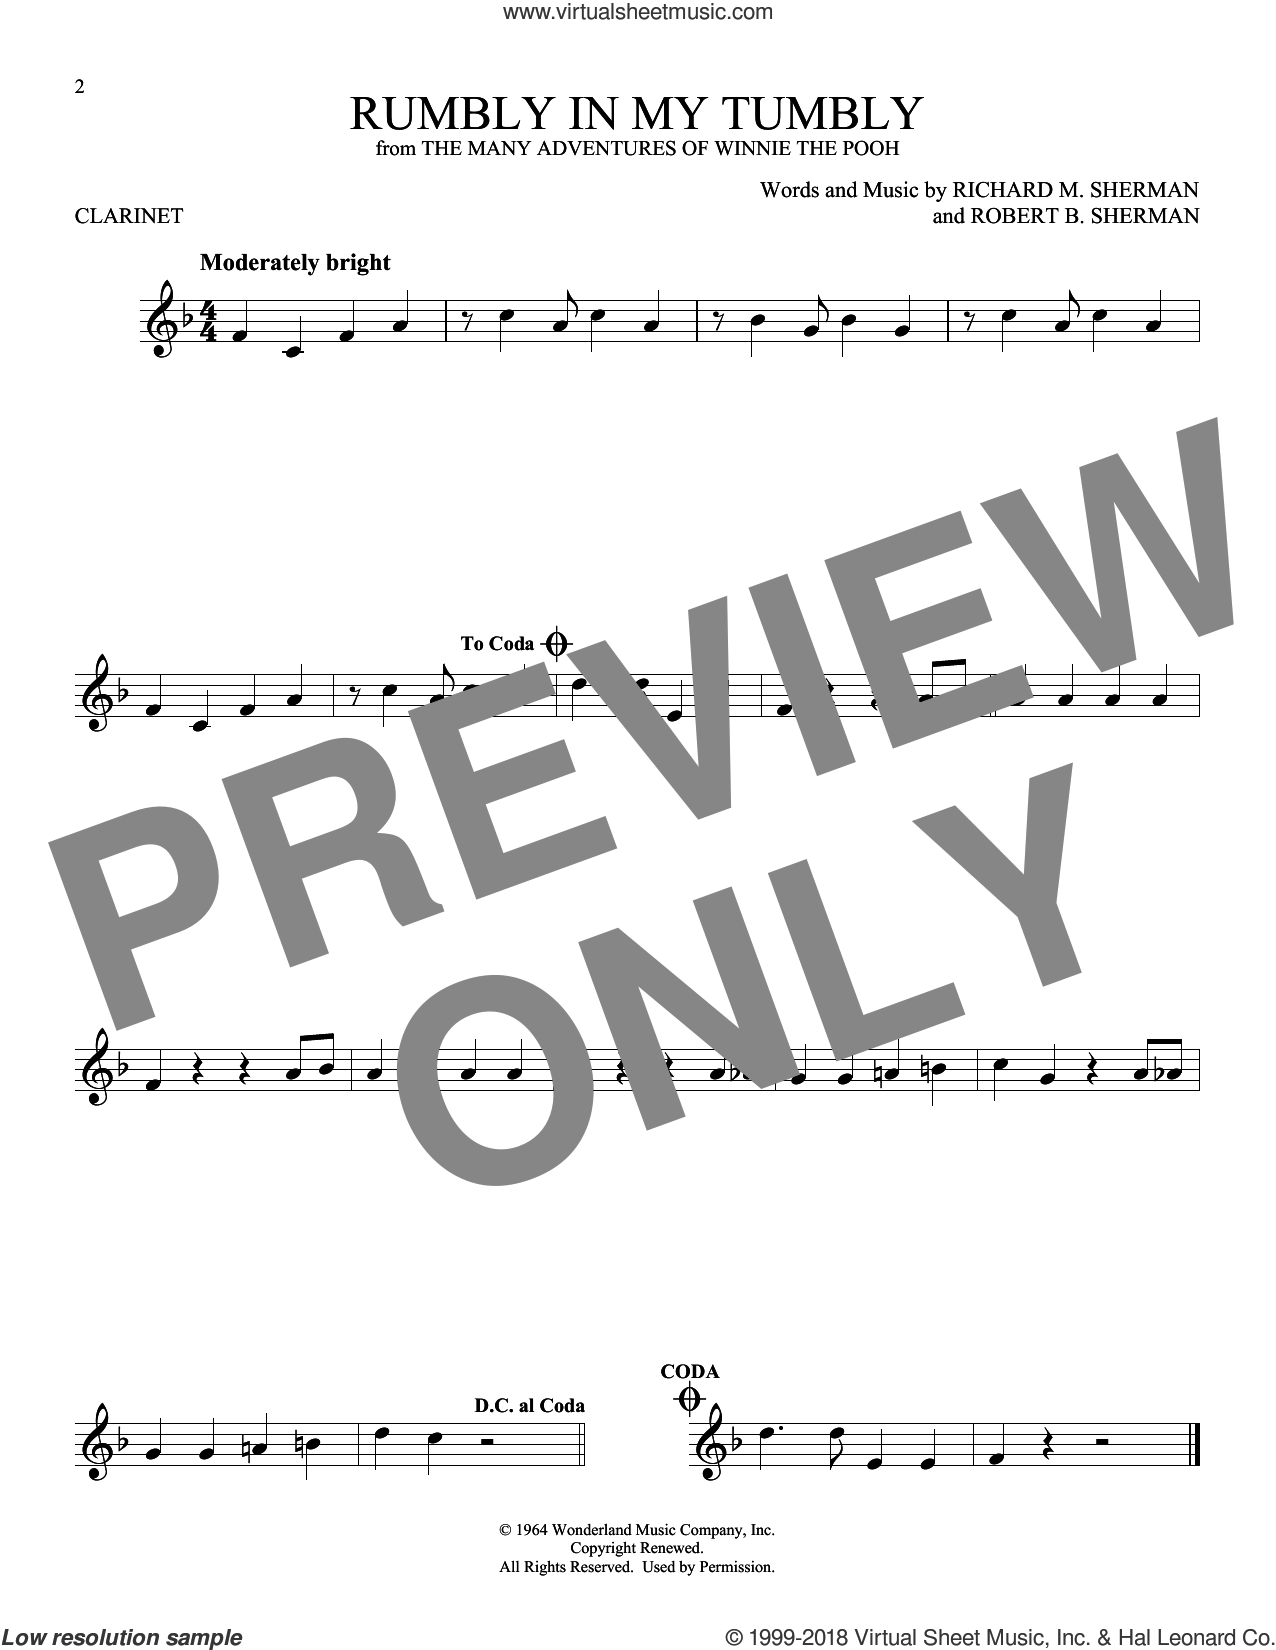 Rumbly In My Tumbly sheet music for clarinet solo by Richard M. Sherman and Robert B. Sherman, intermediate skill level